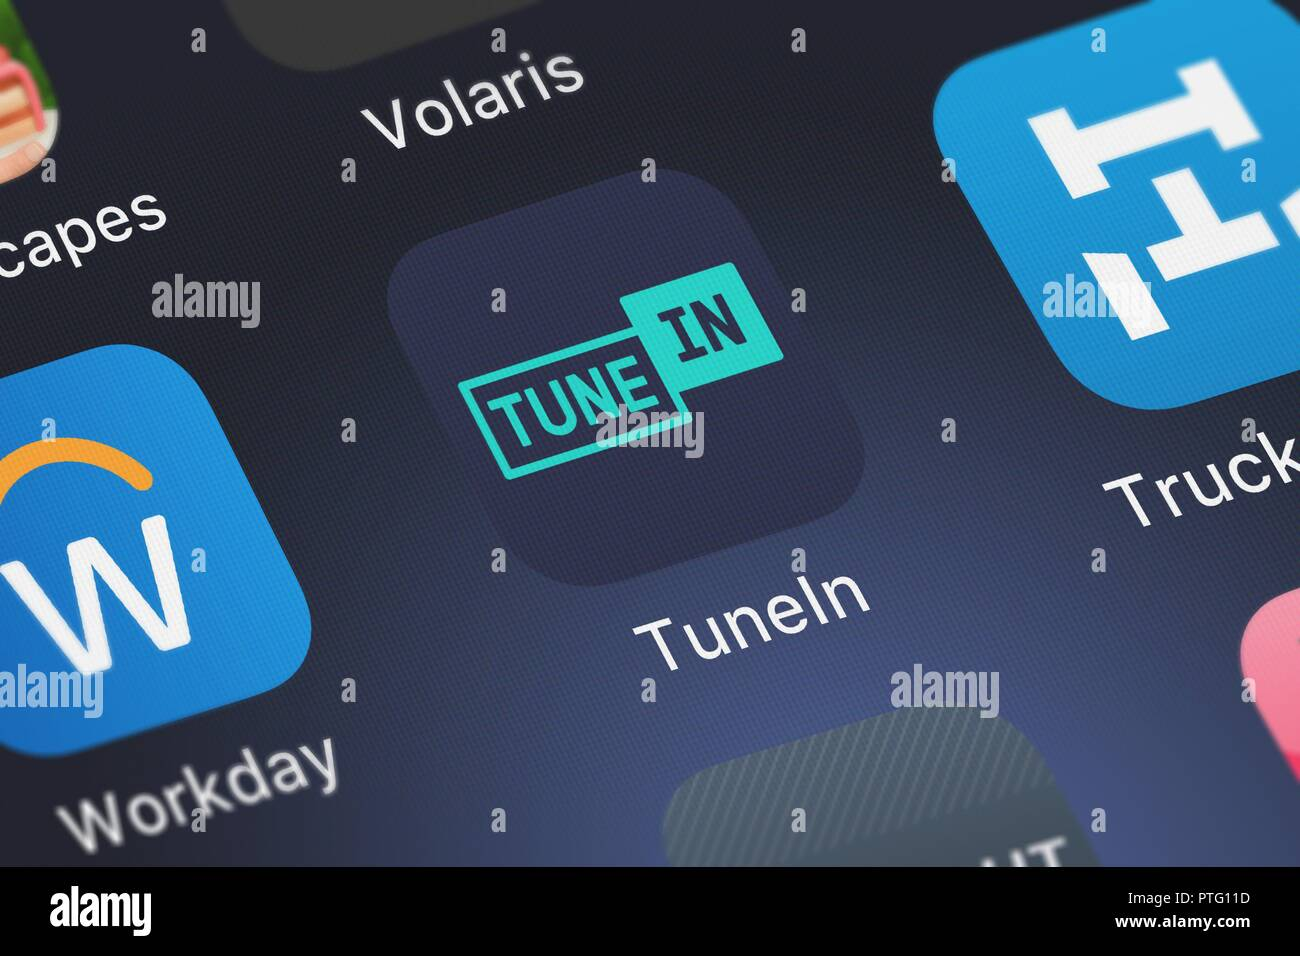 Tunein Radio Stock Photos & Tunein Radio Stock Images - Alamy